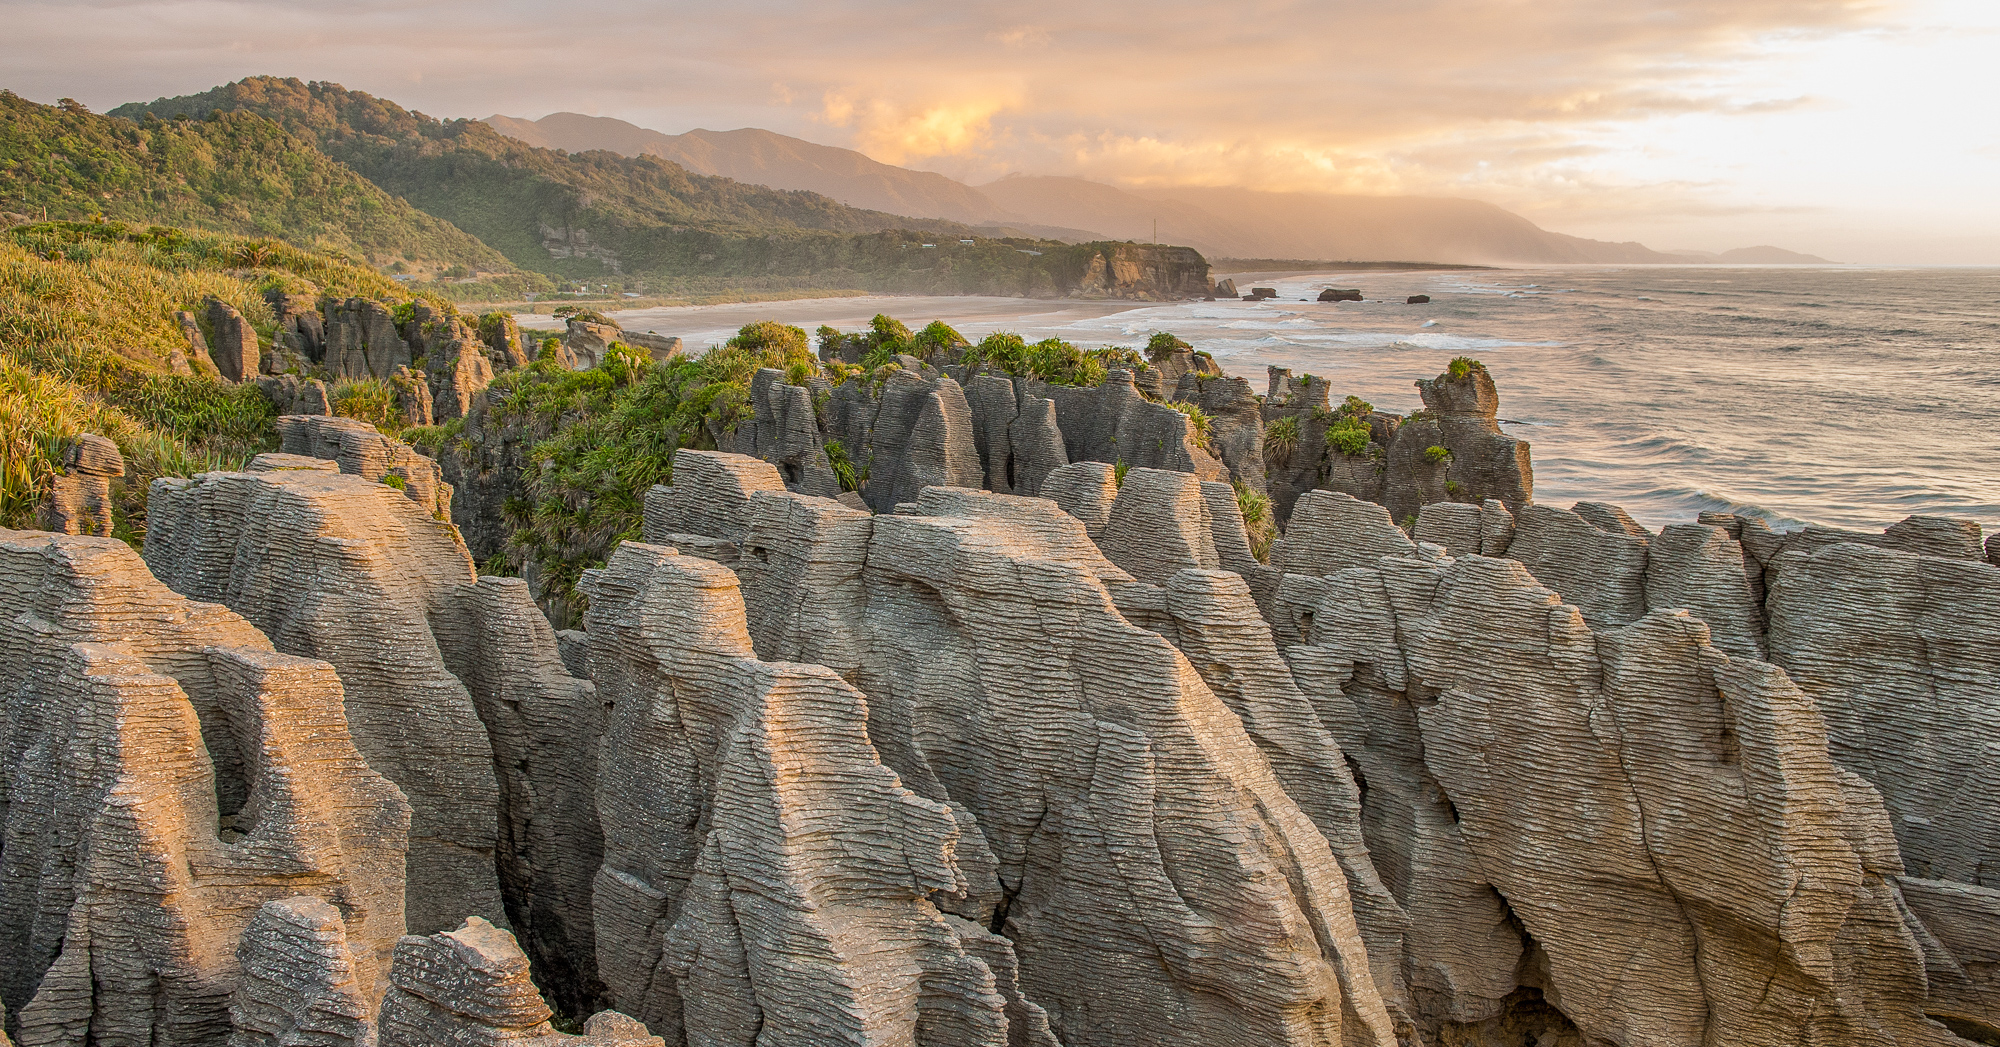 New Zealand Facebook: 25 Photos To Inspire You To Visit New Zealand